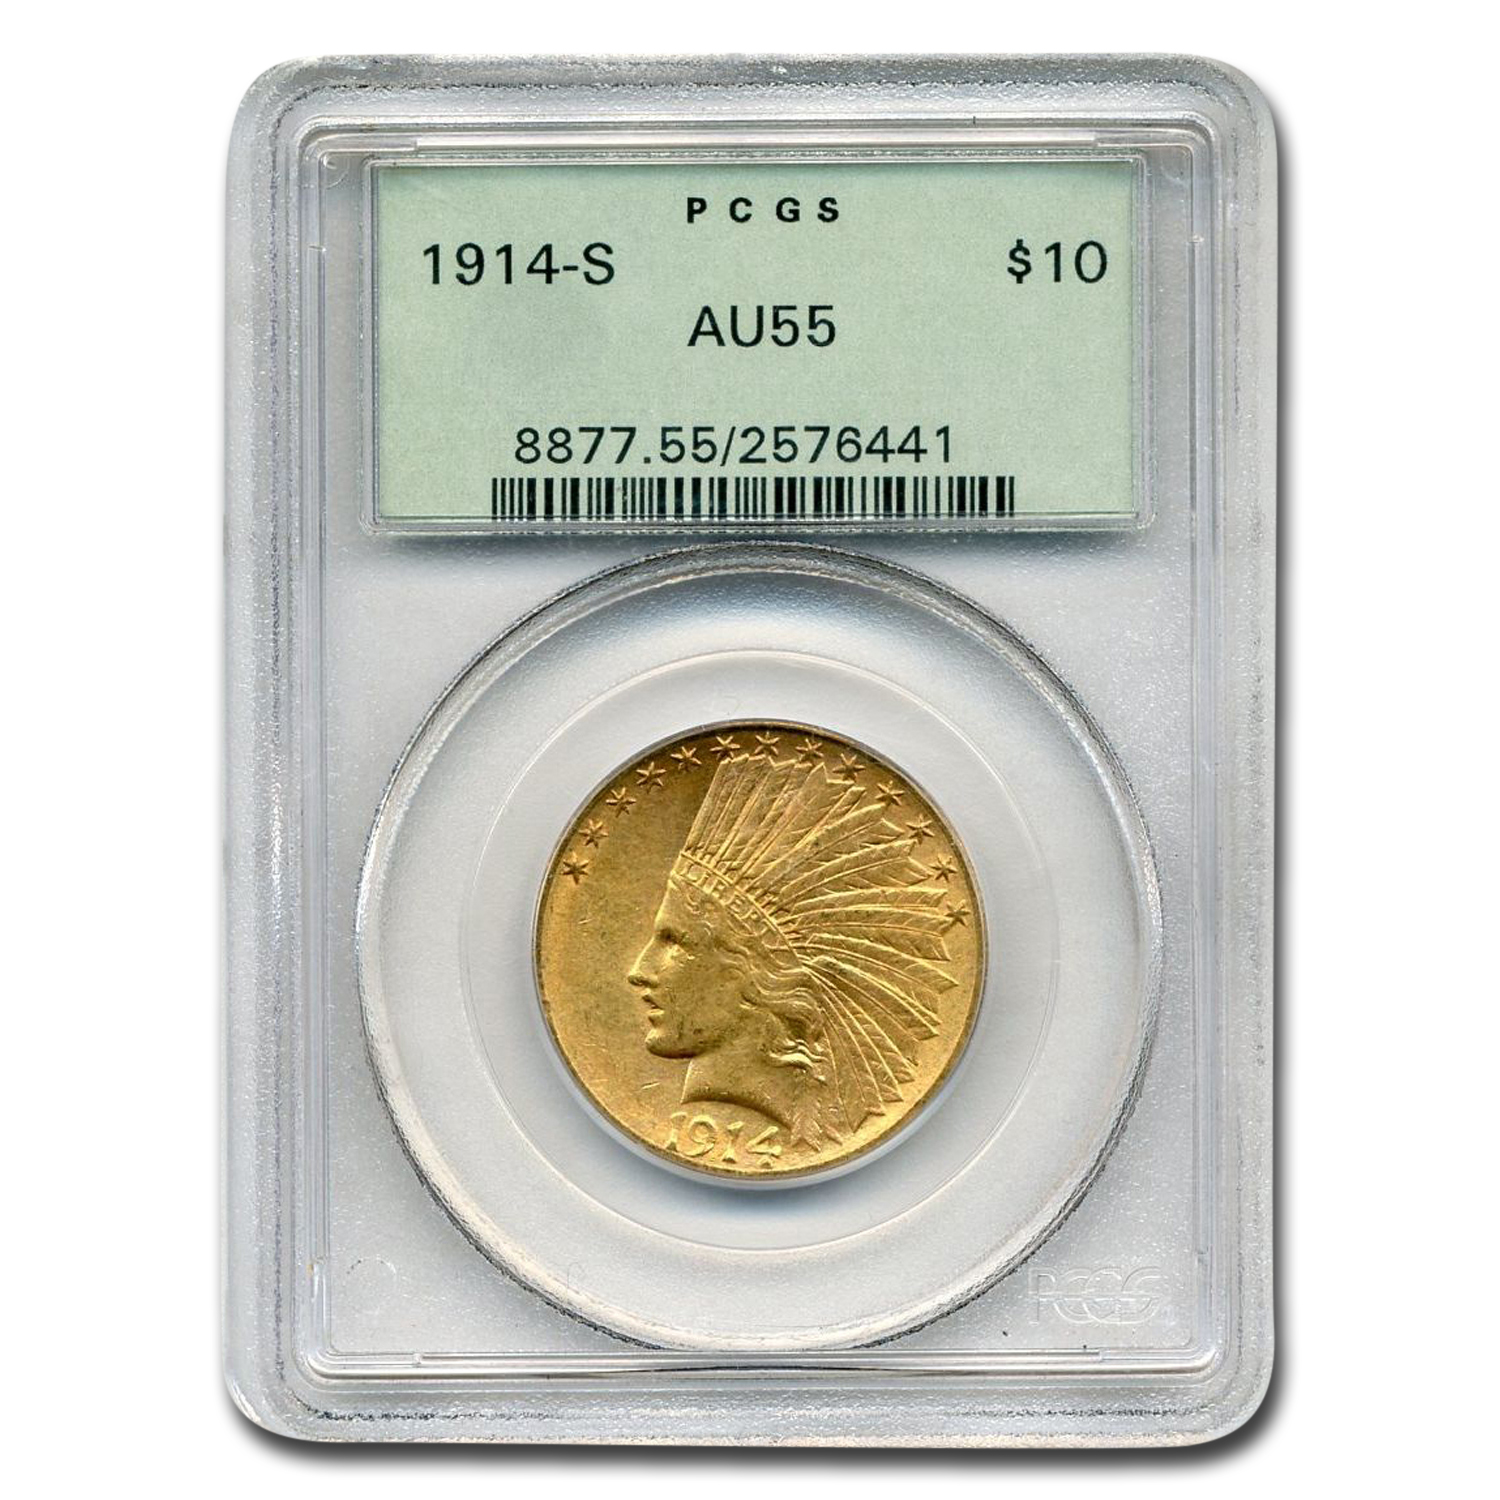 1914-S $10 Indian Gold Eagle - AU-55 PCGS